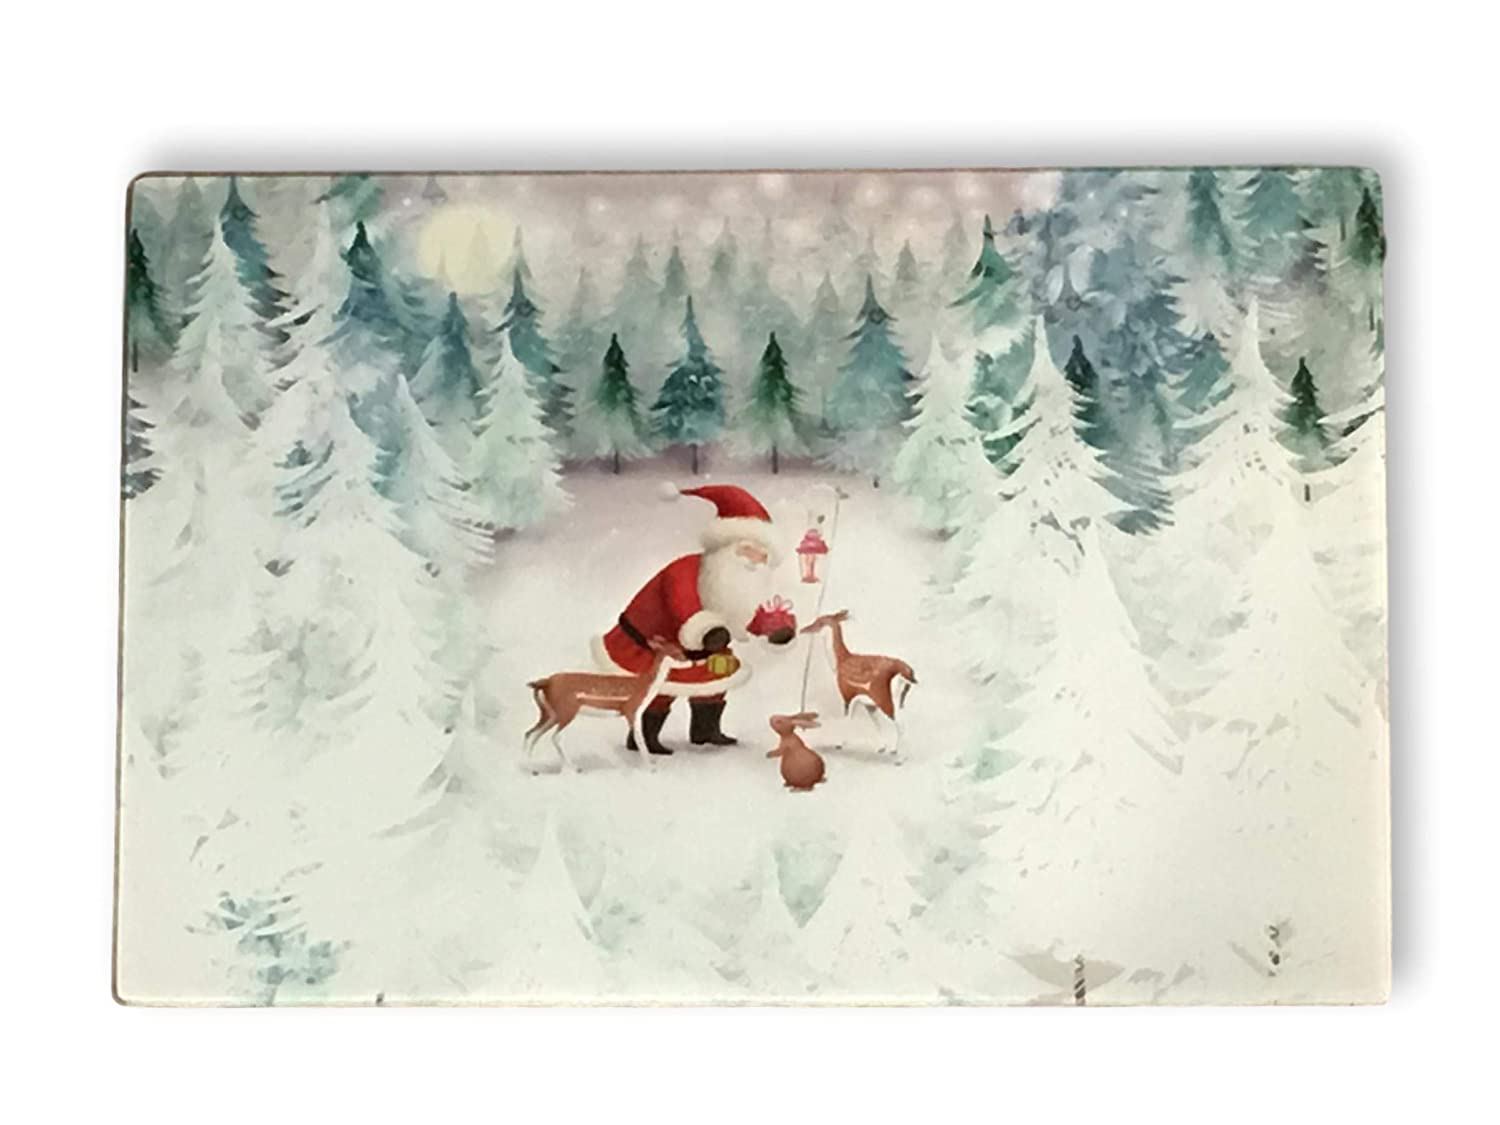 Christmas Cutting Boards Holiday Kitchen Decor Plum Nellie S Treasure S 15 X 12 Red Truck Happy Holidays Christmas Tree Glass 8 X 12 Or 15 X 12 Home Kitchen Cutting Boards Stanoc Com